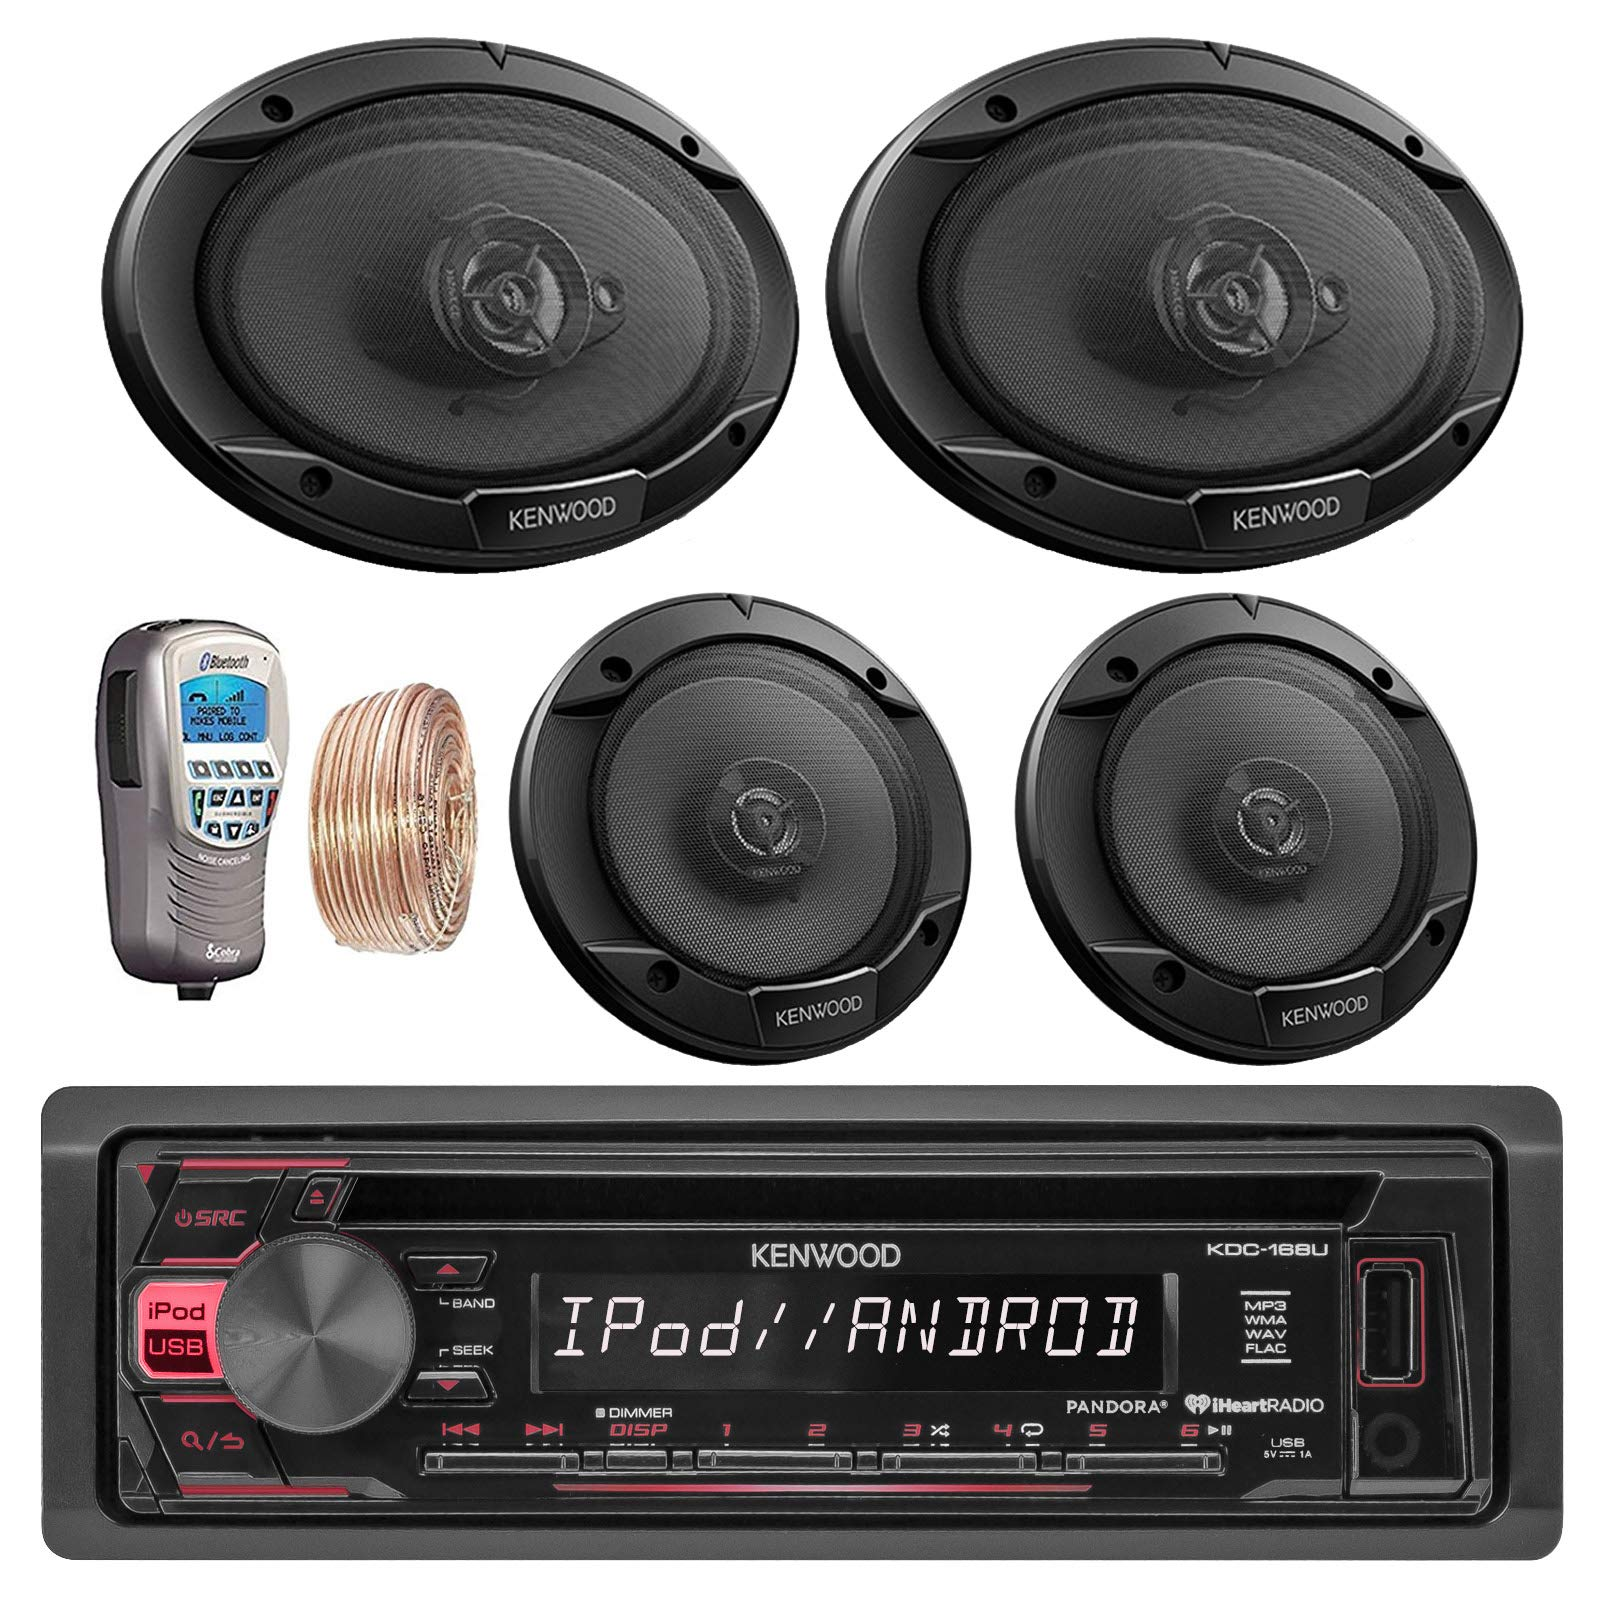 Kenwood Car In Dash CD MP3 AM/FM AUX USB Radio Stereo Receiver & Remote 2 X 6.5'' Inch Car Speakers 2 X 6x9'' 6 by 9 Inch Kenwood Car Speakers + 50Ft Speaker Wire + Handheld Remote (Without Amplifier)